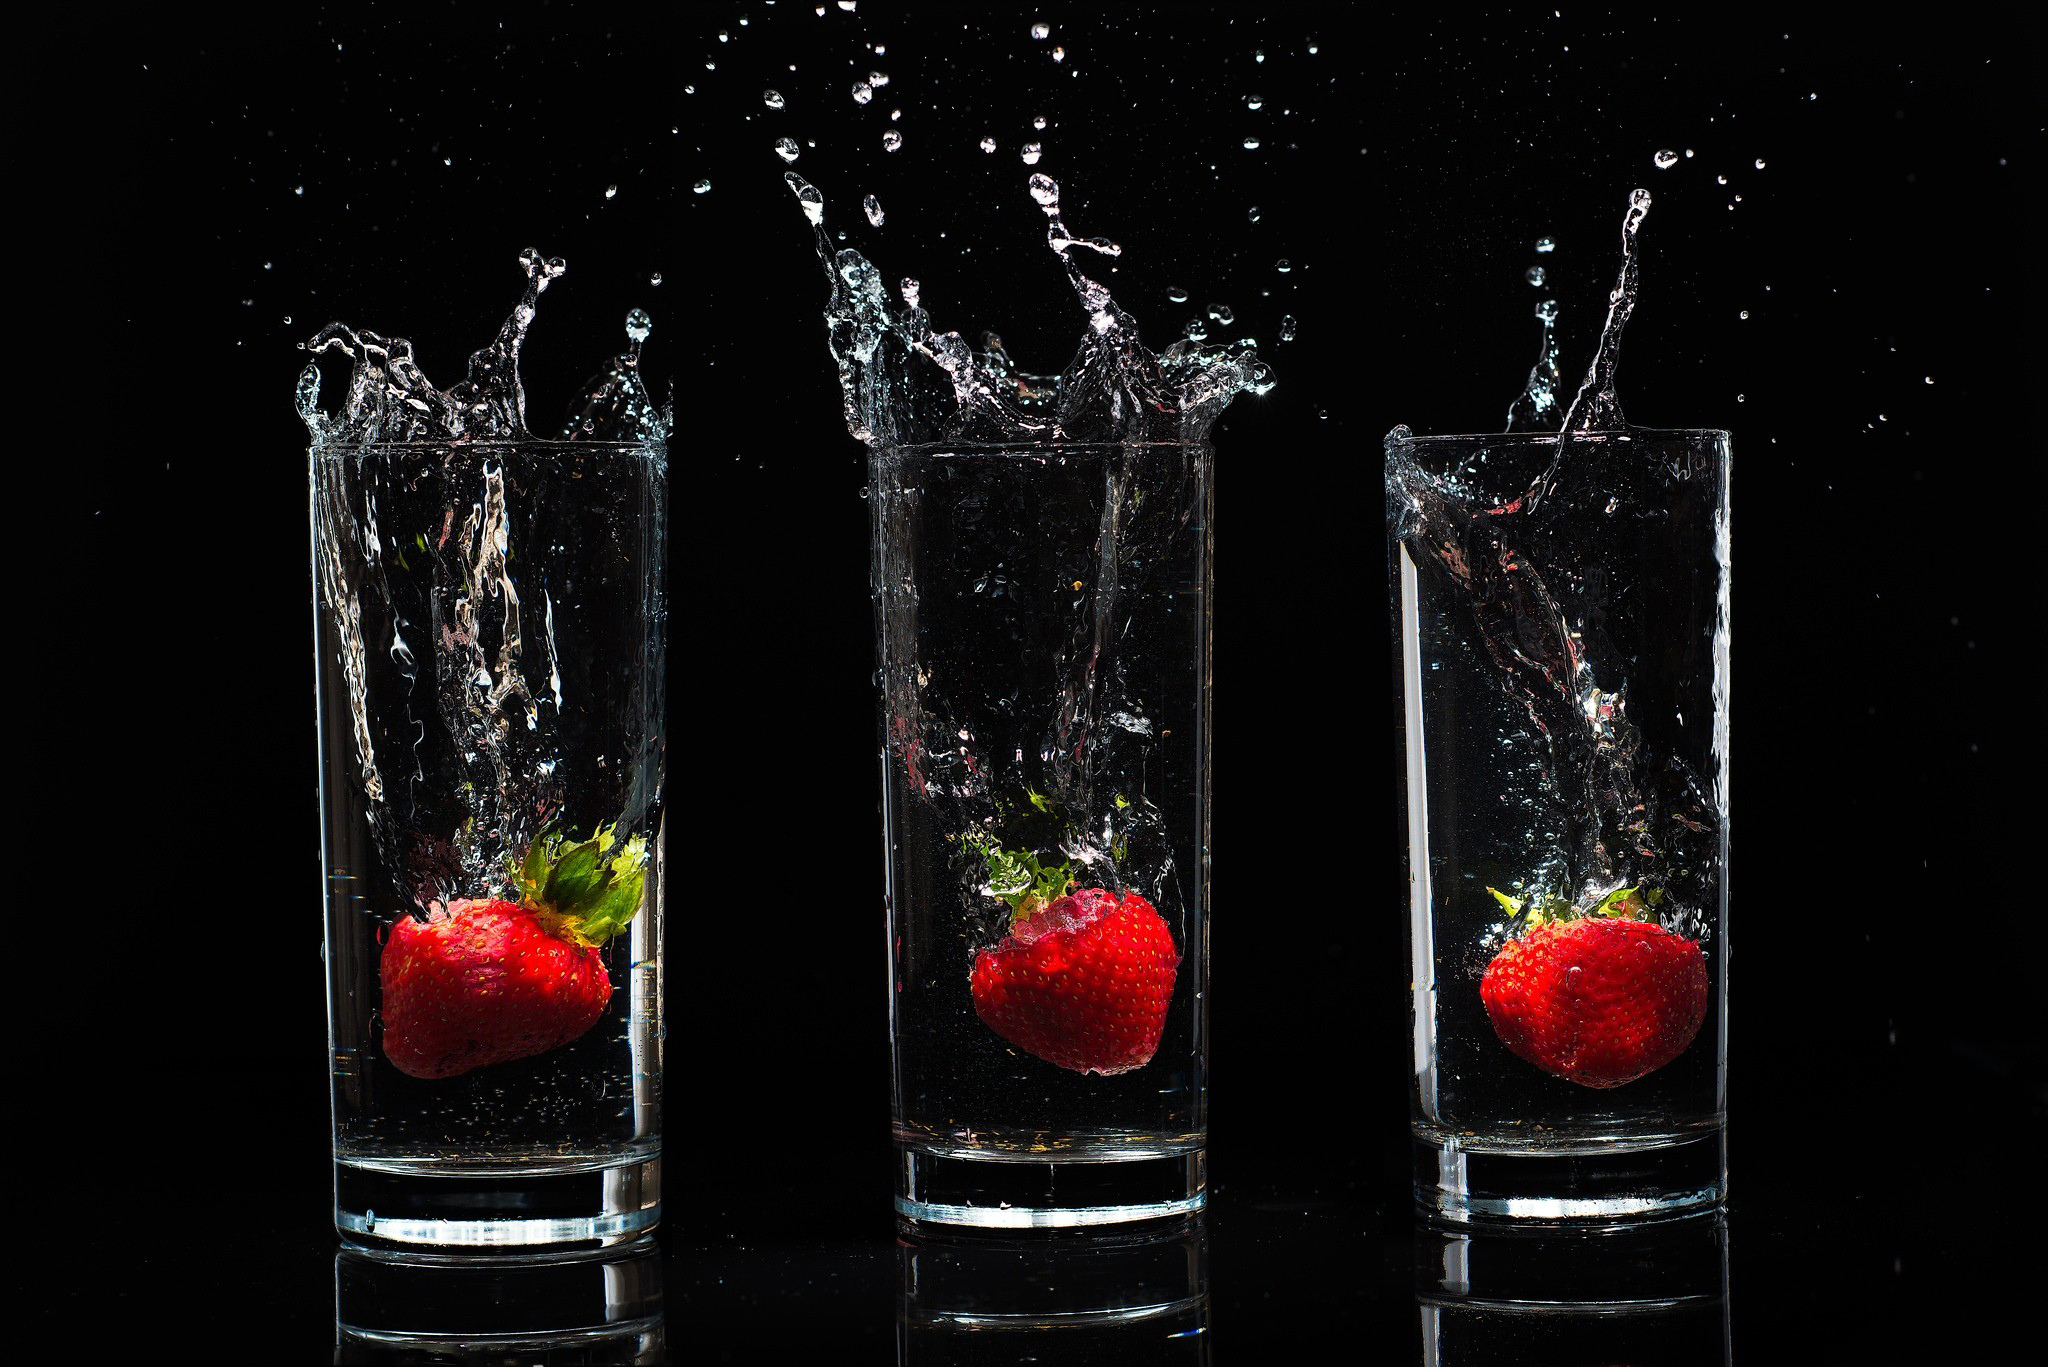 Download Hd Wallpaper Of Strawberry Juice: Berries Stanley Background Drops Water Spray Black Glasses